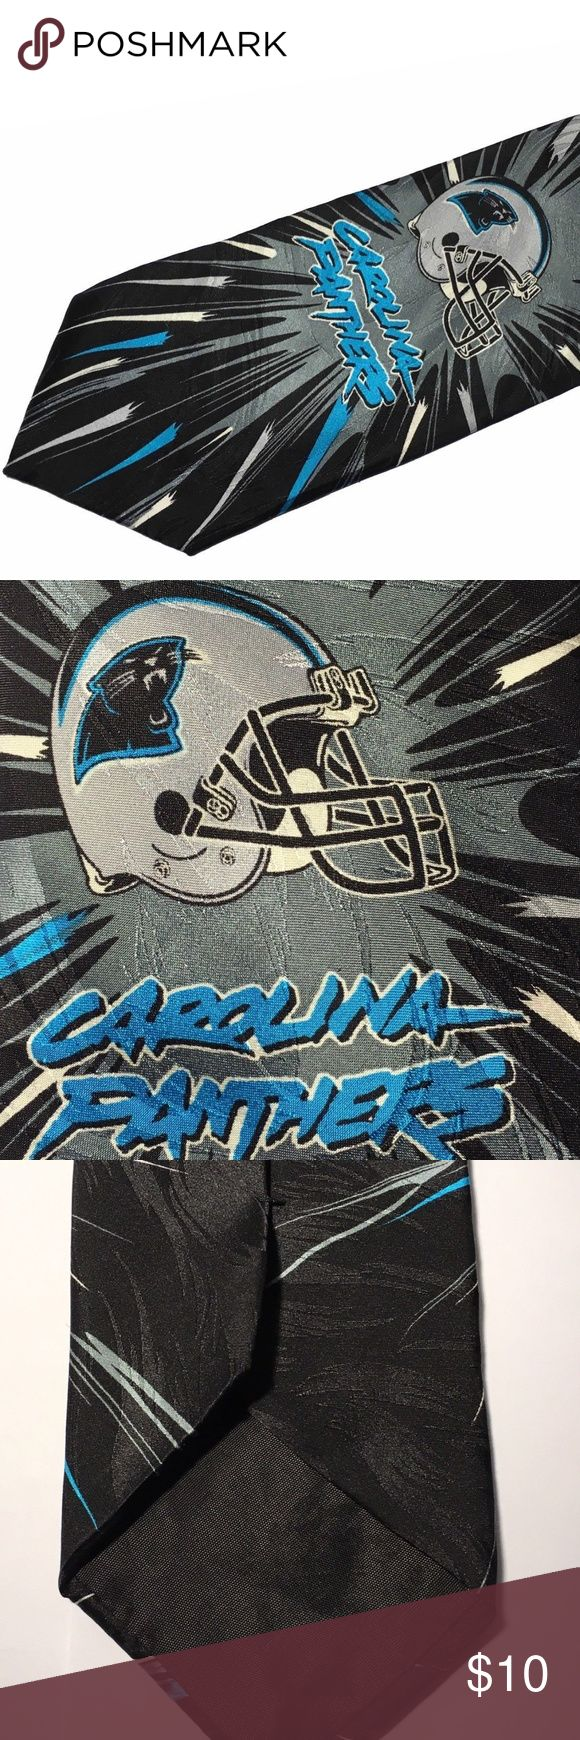 Ralph Marlin NFL Carolina Panthers Helmet Silk Tie Excellent condition USA made Team NFL Ralph Marlin 100% silk tie. Features the helmet of the football team Carolina Panthers. Tie was produced in 1998. Sure to be a wardrobe success on game weekend. Length is 56 inches Width at widest point is 3.75 inches NFL Accessories Ties